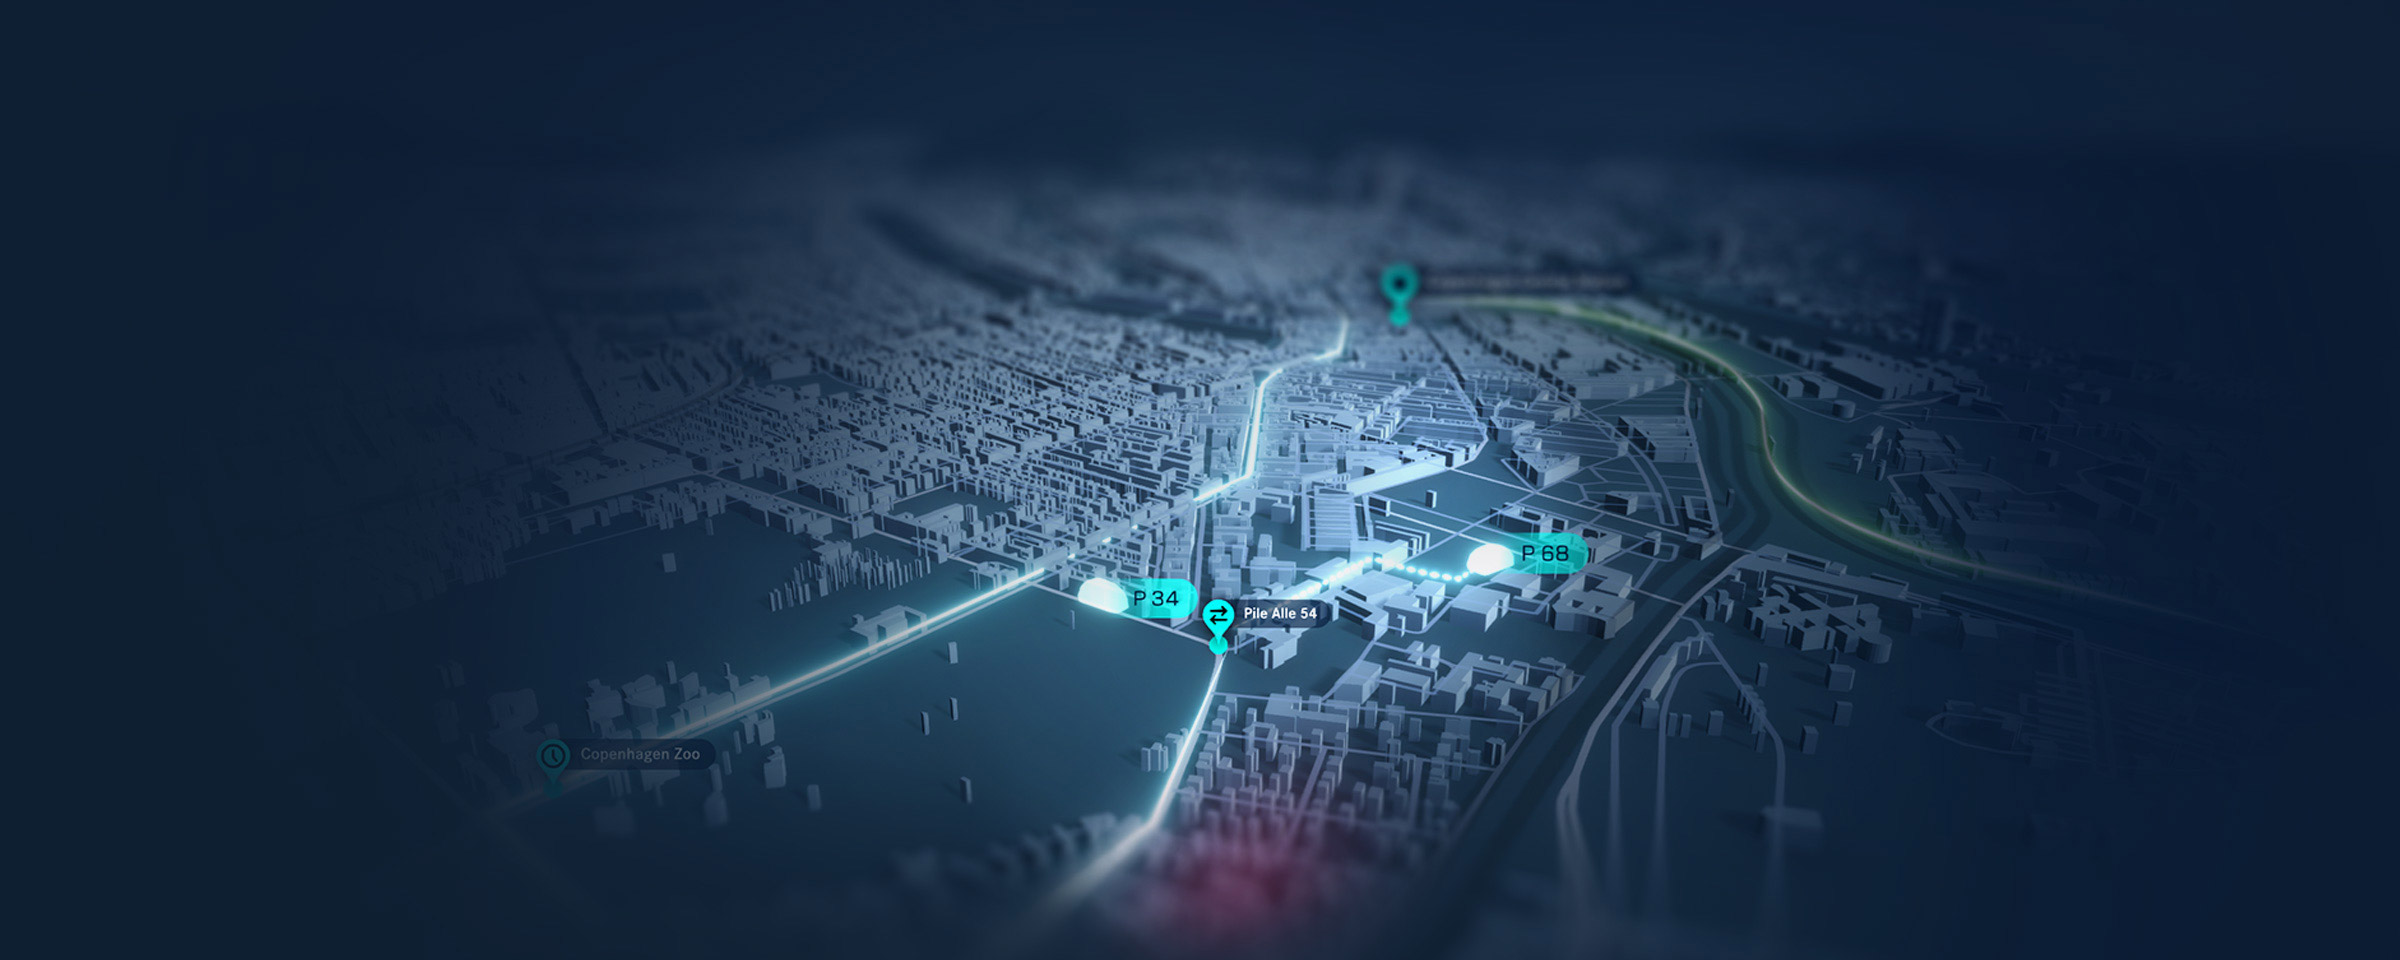 Blue 3D city map with routes and destinations